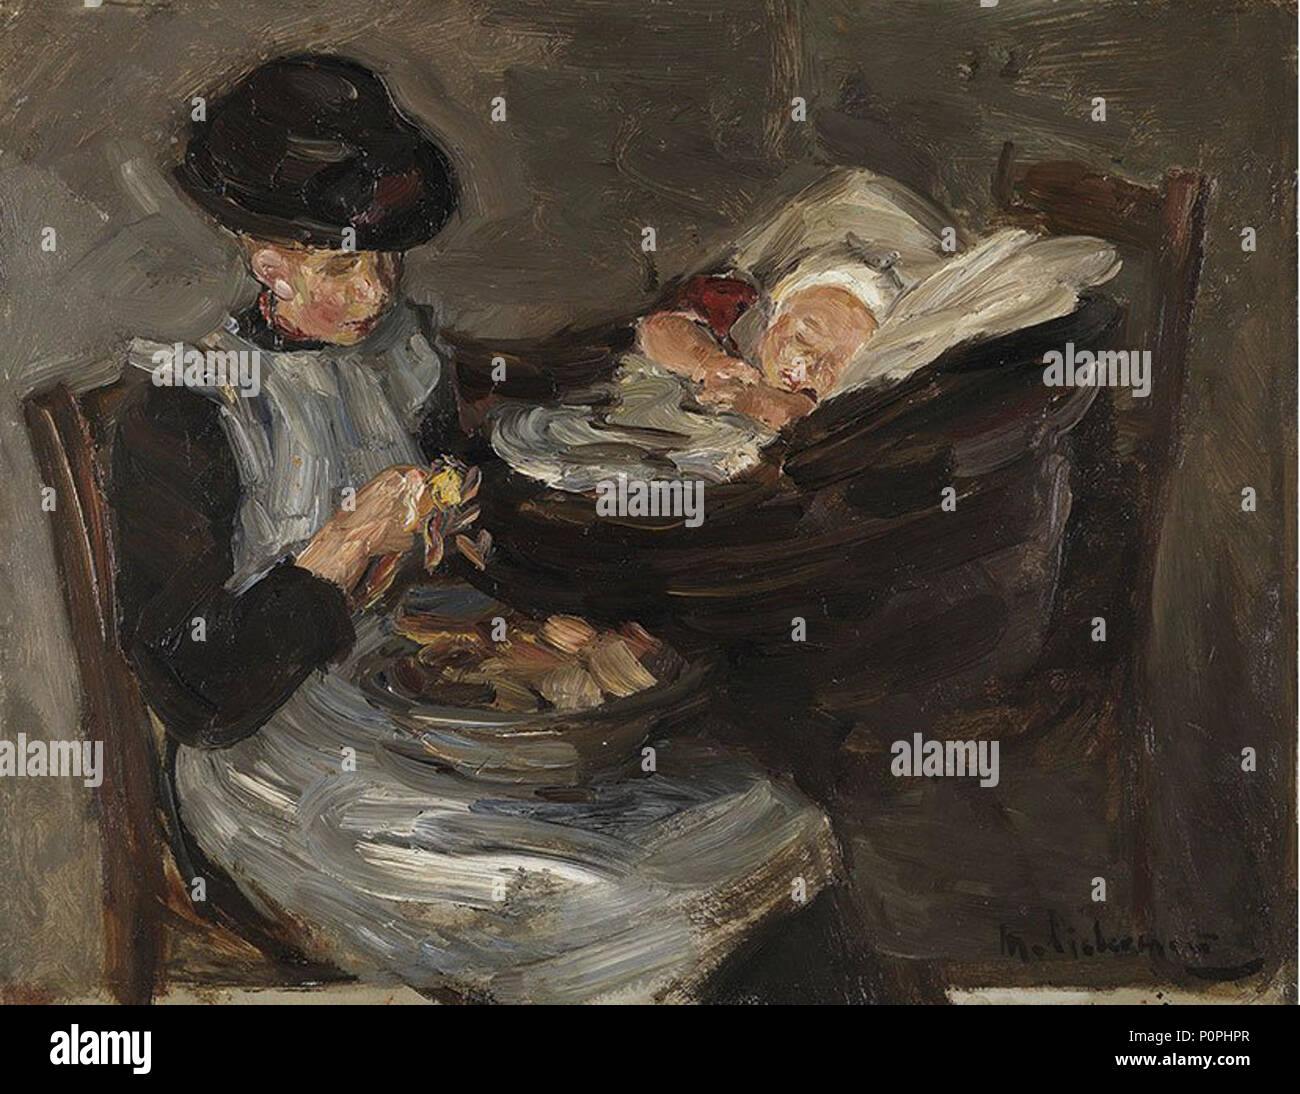 'Girl from Laren Peeling Potatoes with Sleeping Child in a Basket' by Max Liebermann. - Stock Image